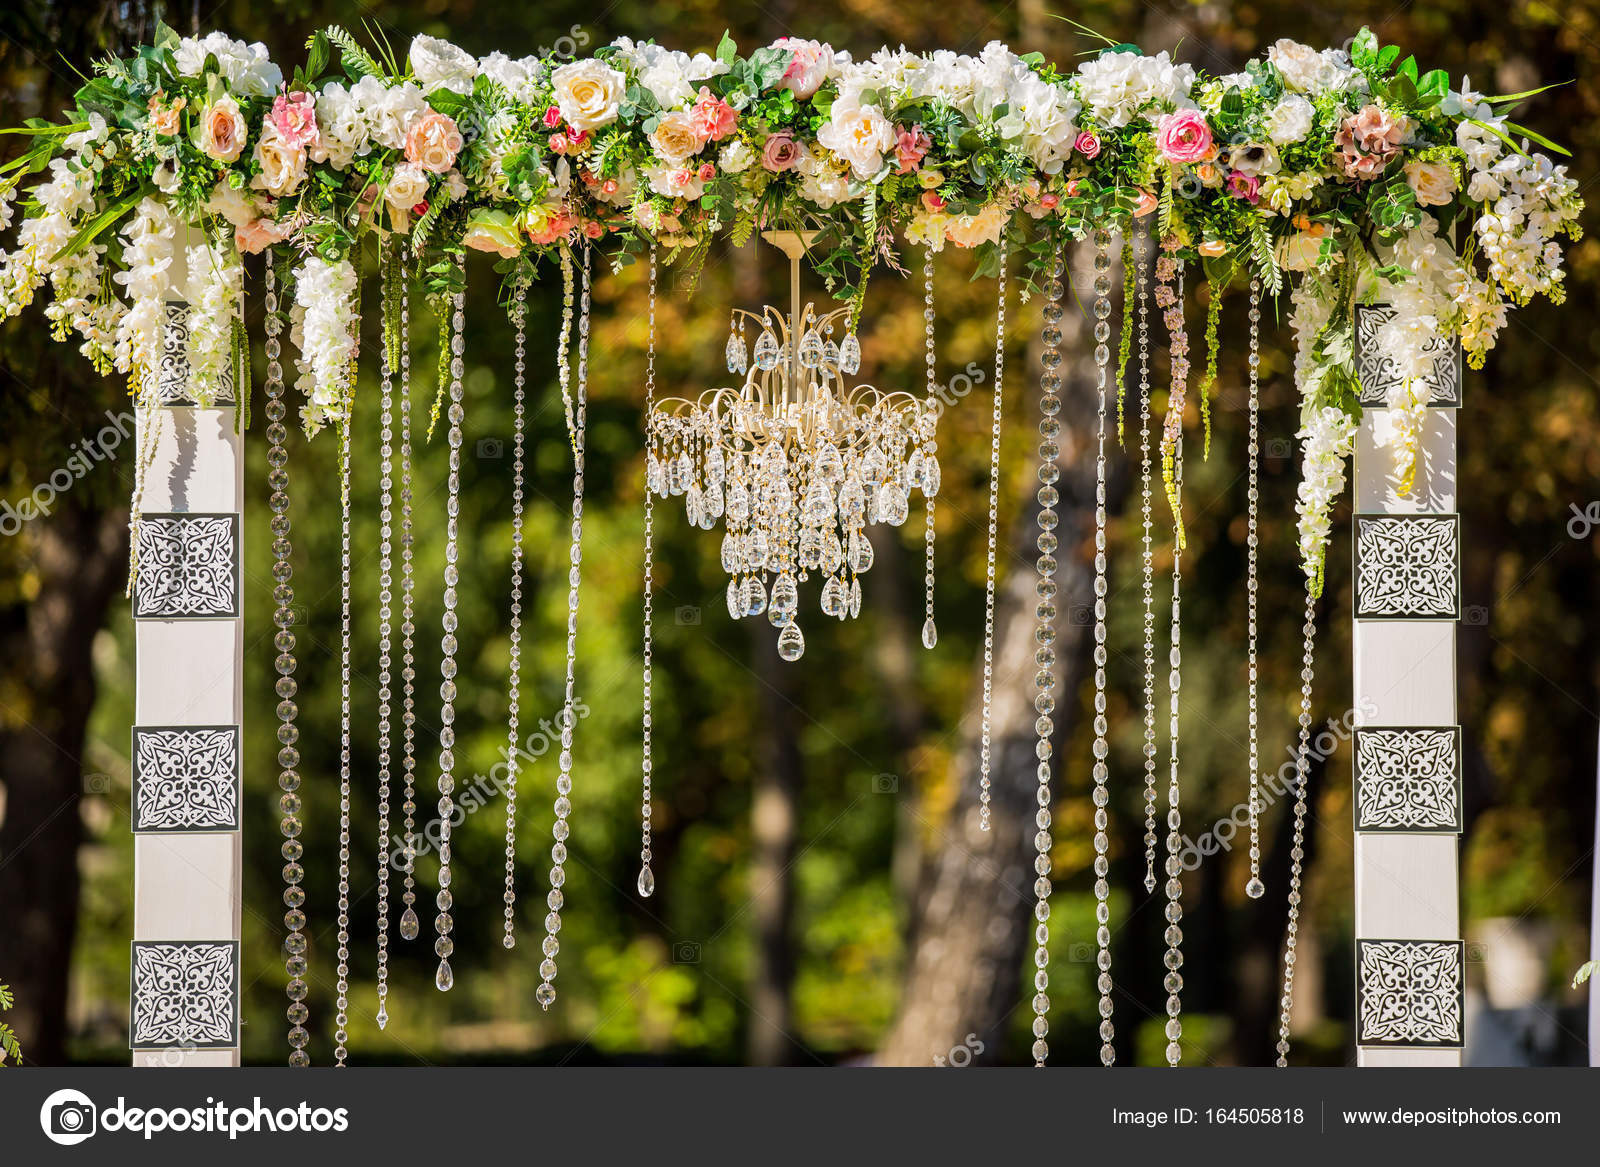 Arch for the wedding ceremony decorated with crystal chandelier and arch for the wedding ceremony decorated with crystal chandelier and fresh flowers wedding decorations the newlyweds photo by wedmov junglespirit Choice Image